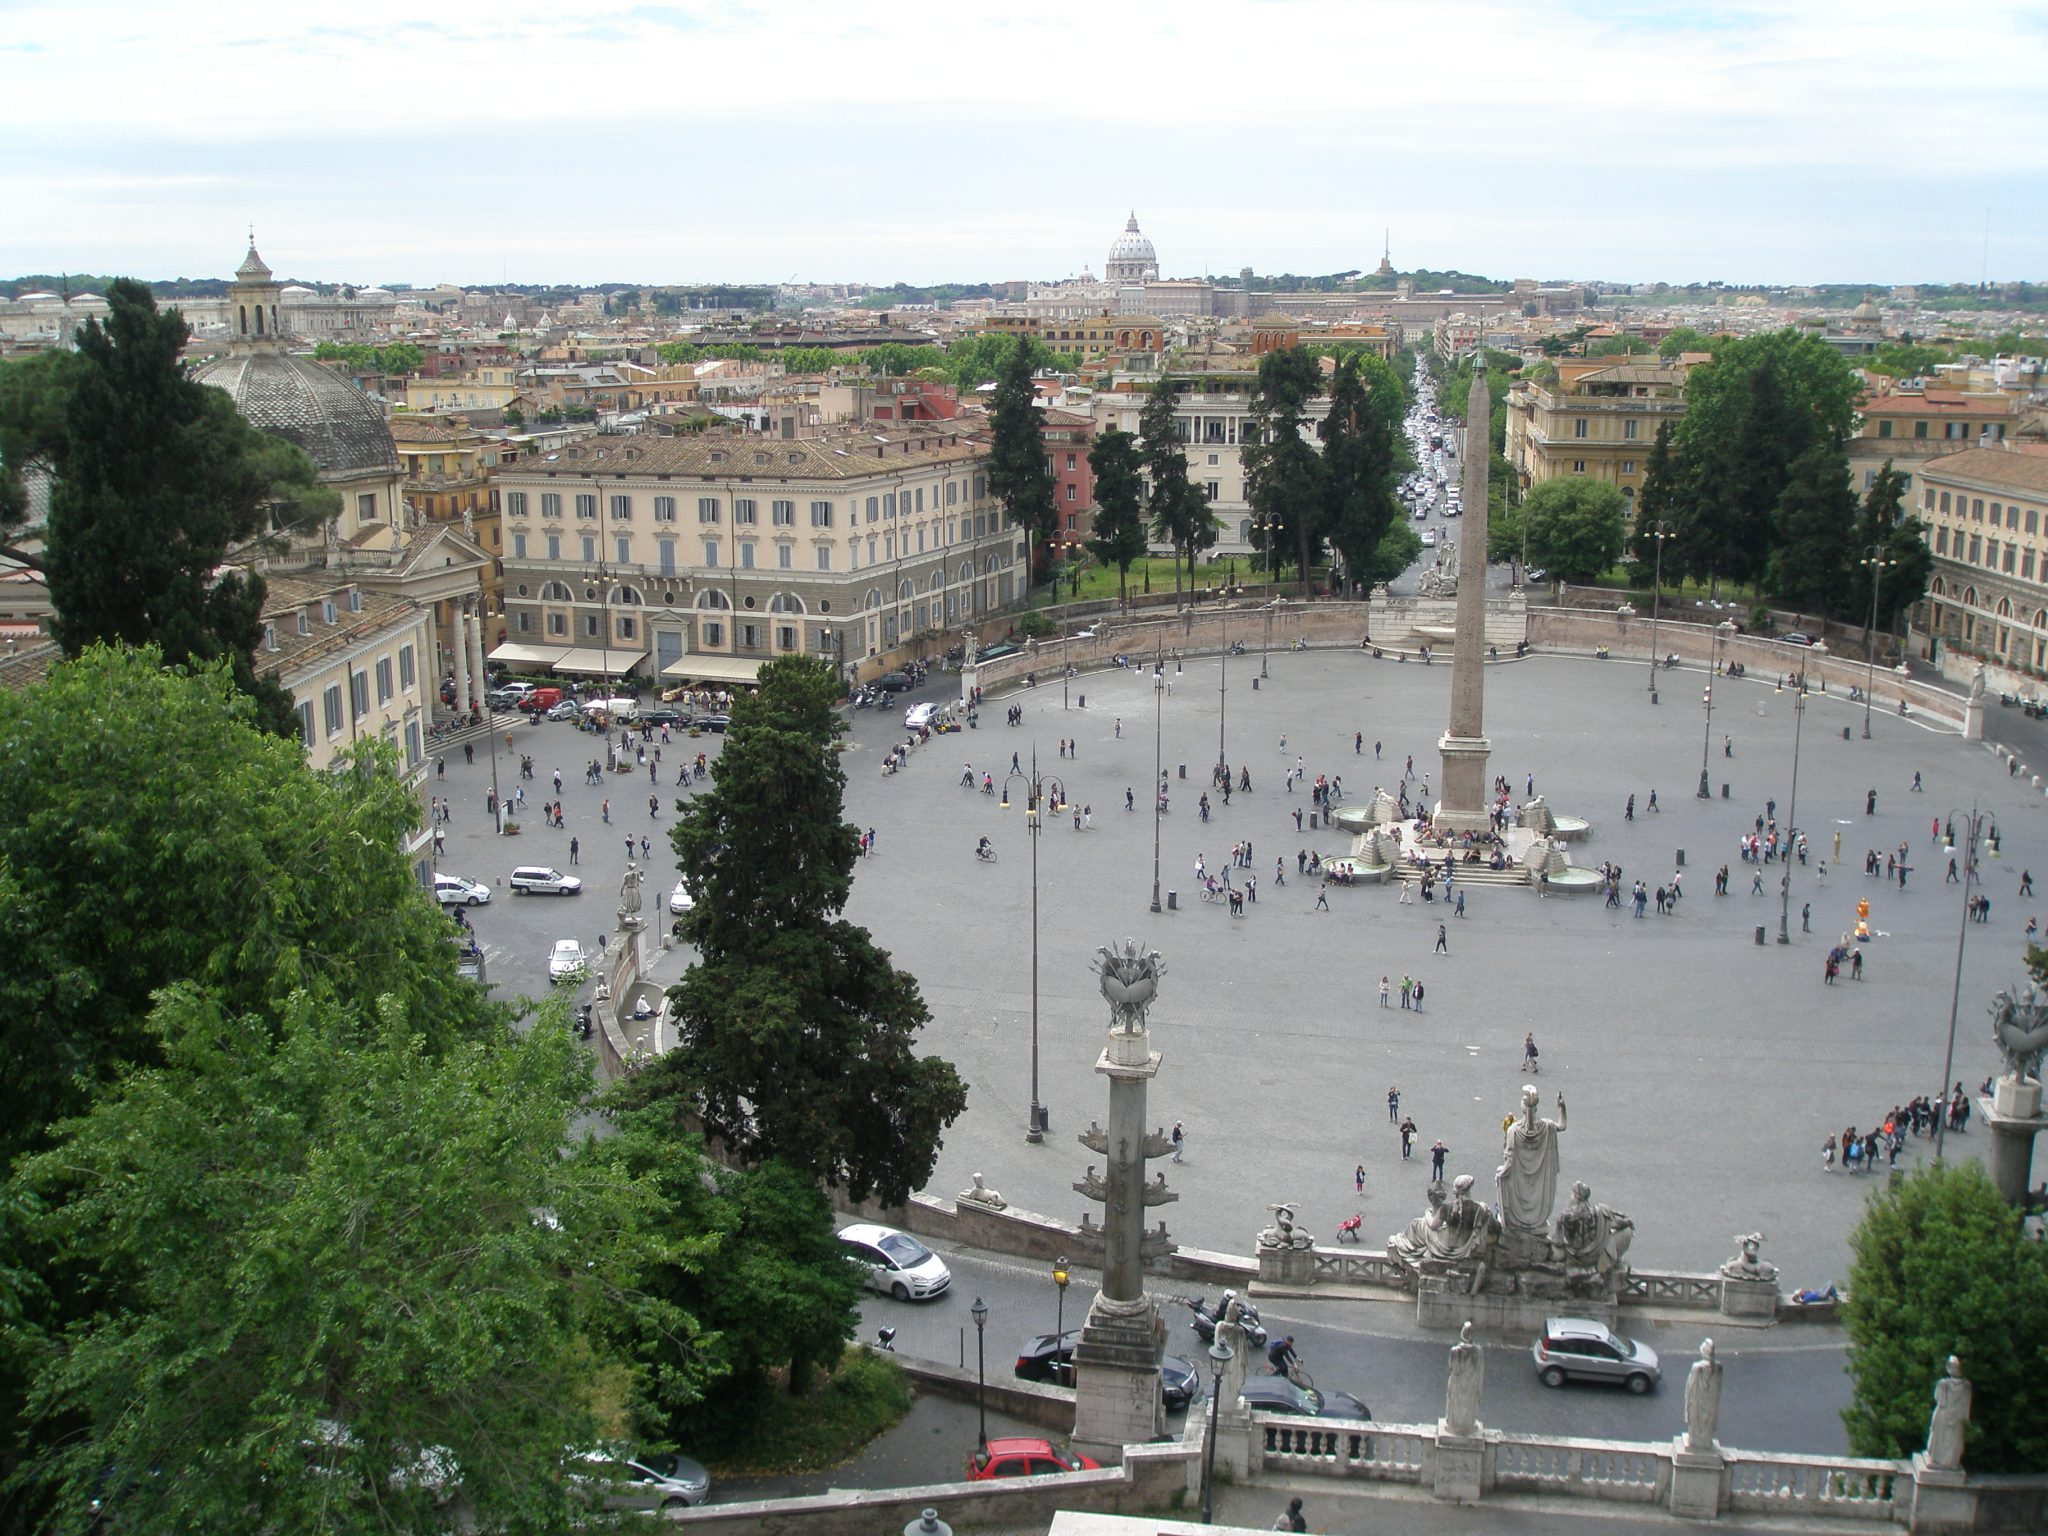 Our view from Piazzale Napoleone, down to Piazza del Popolo.